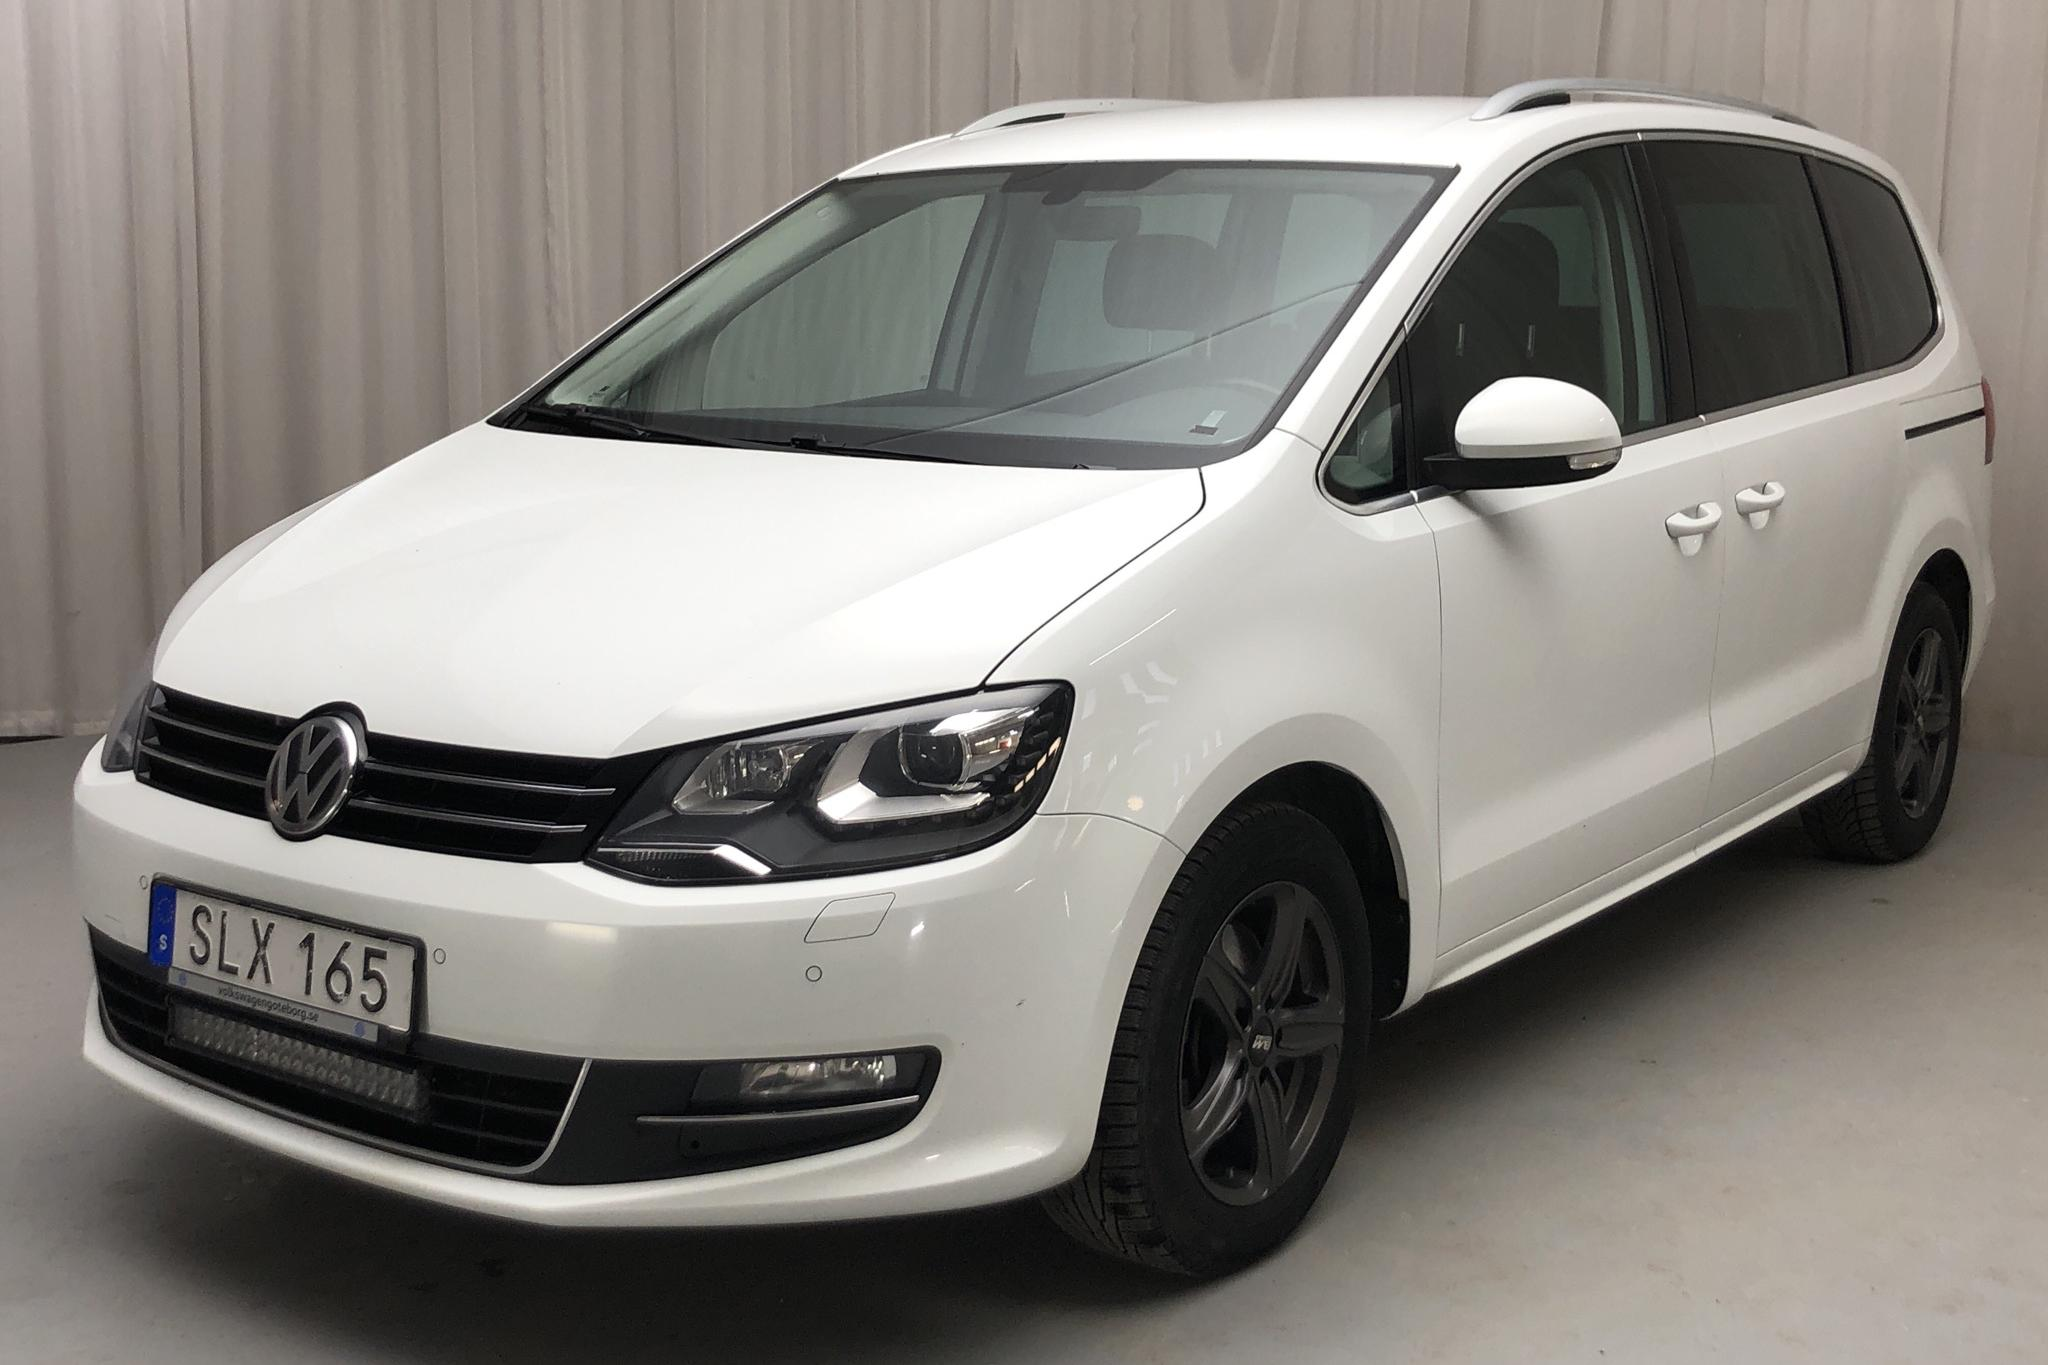 VW Sharan 2.0 TDI 4Motion (184hk) - 177 390 km - Automatic - white - 2018